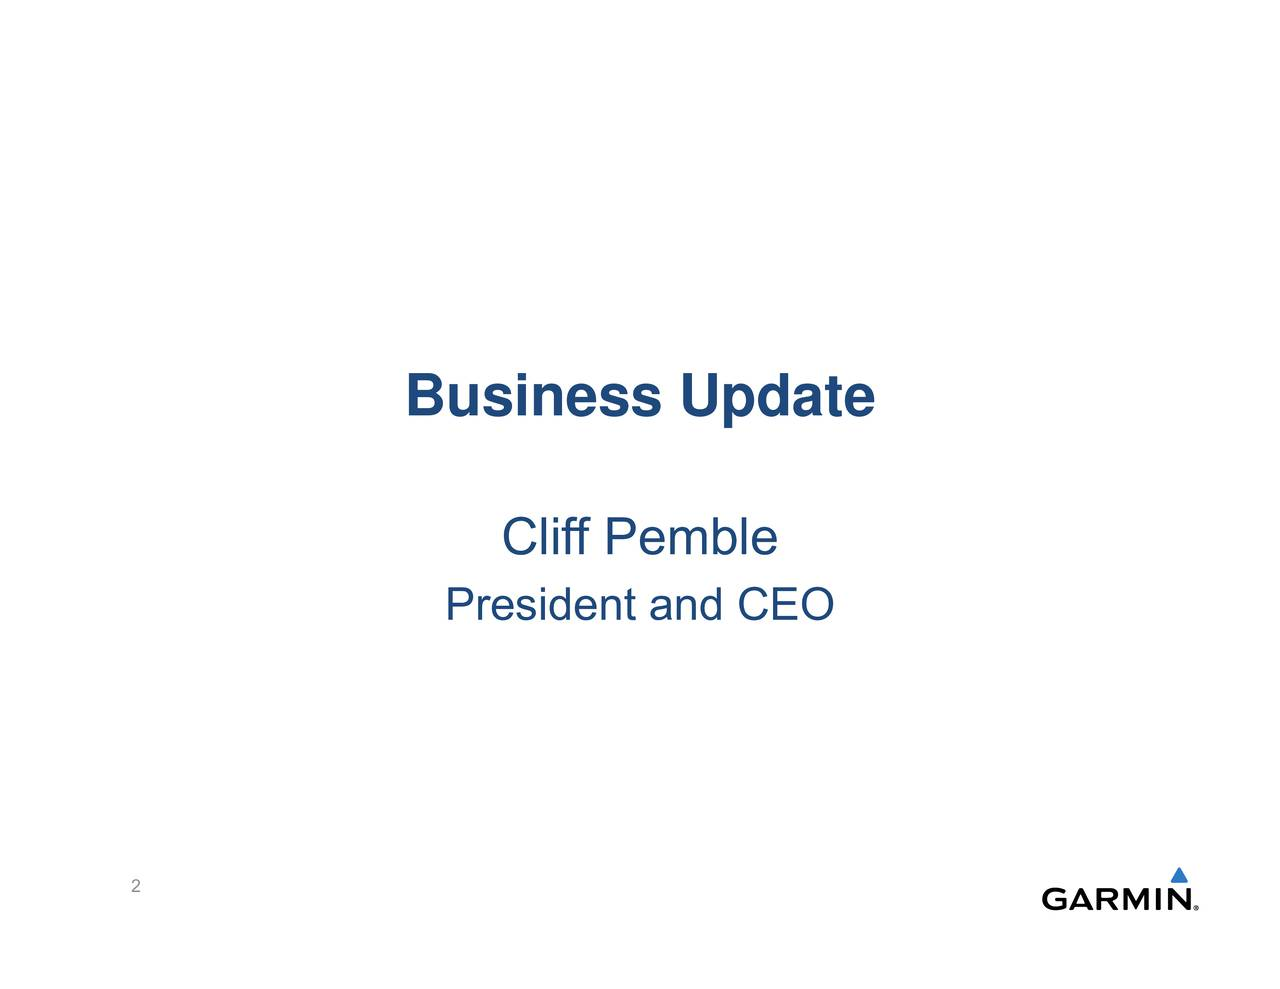 President and CEO Business Update 2